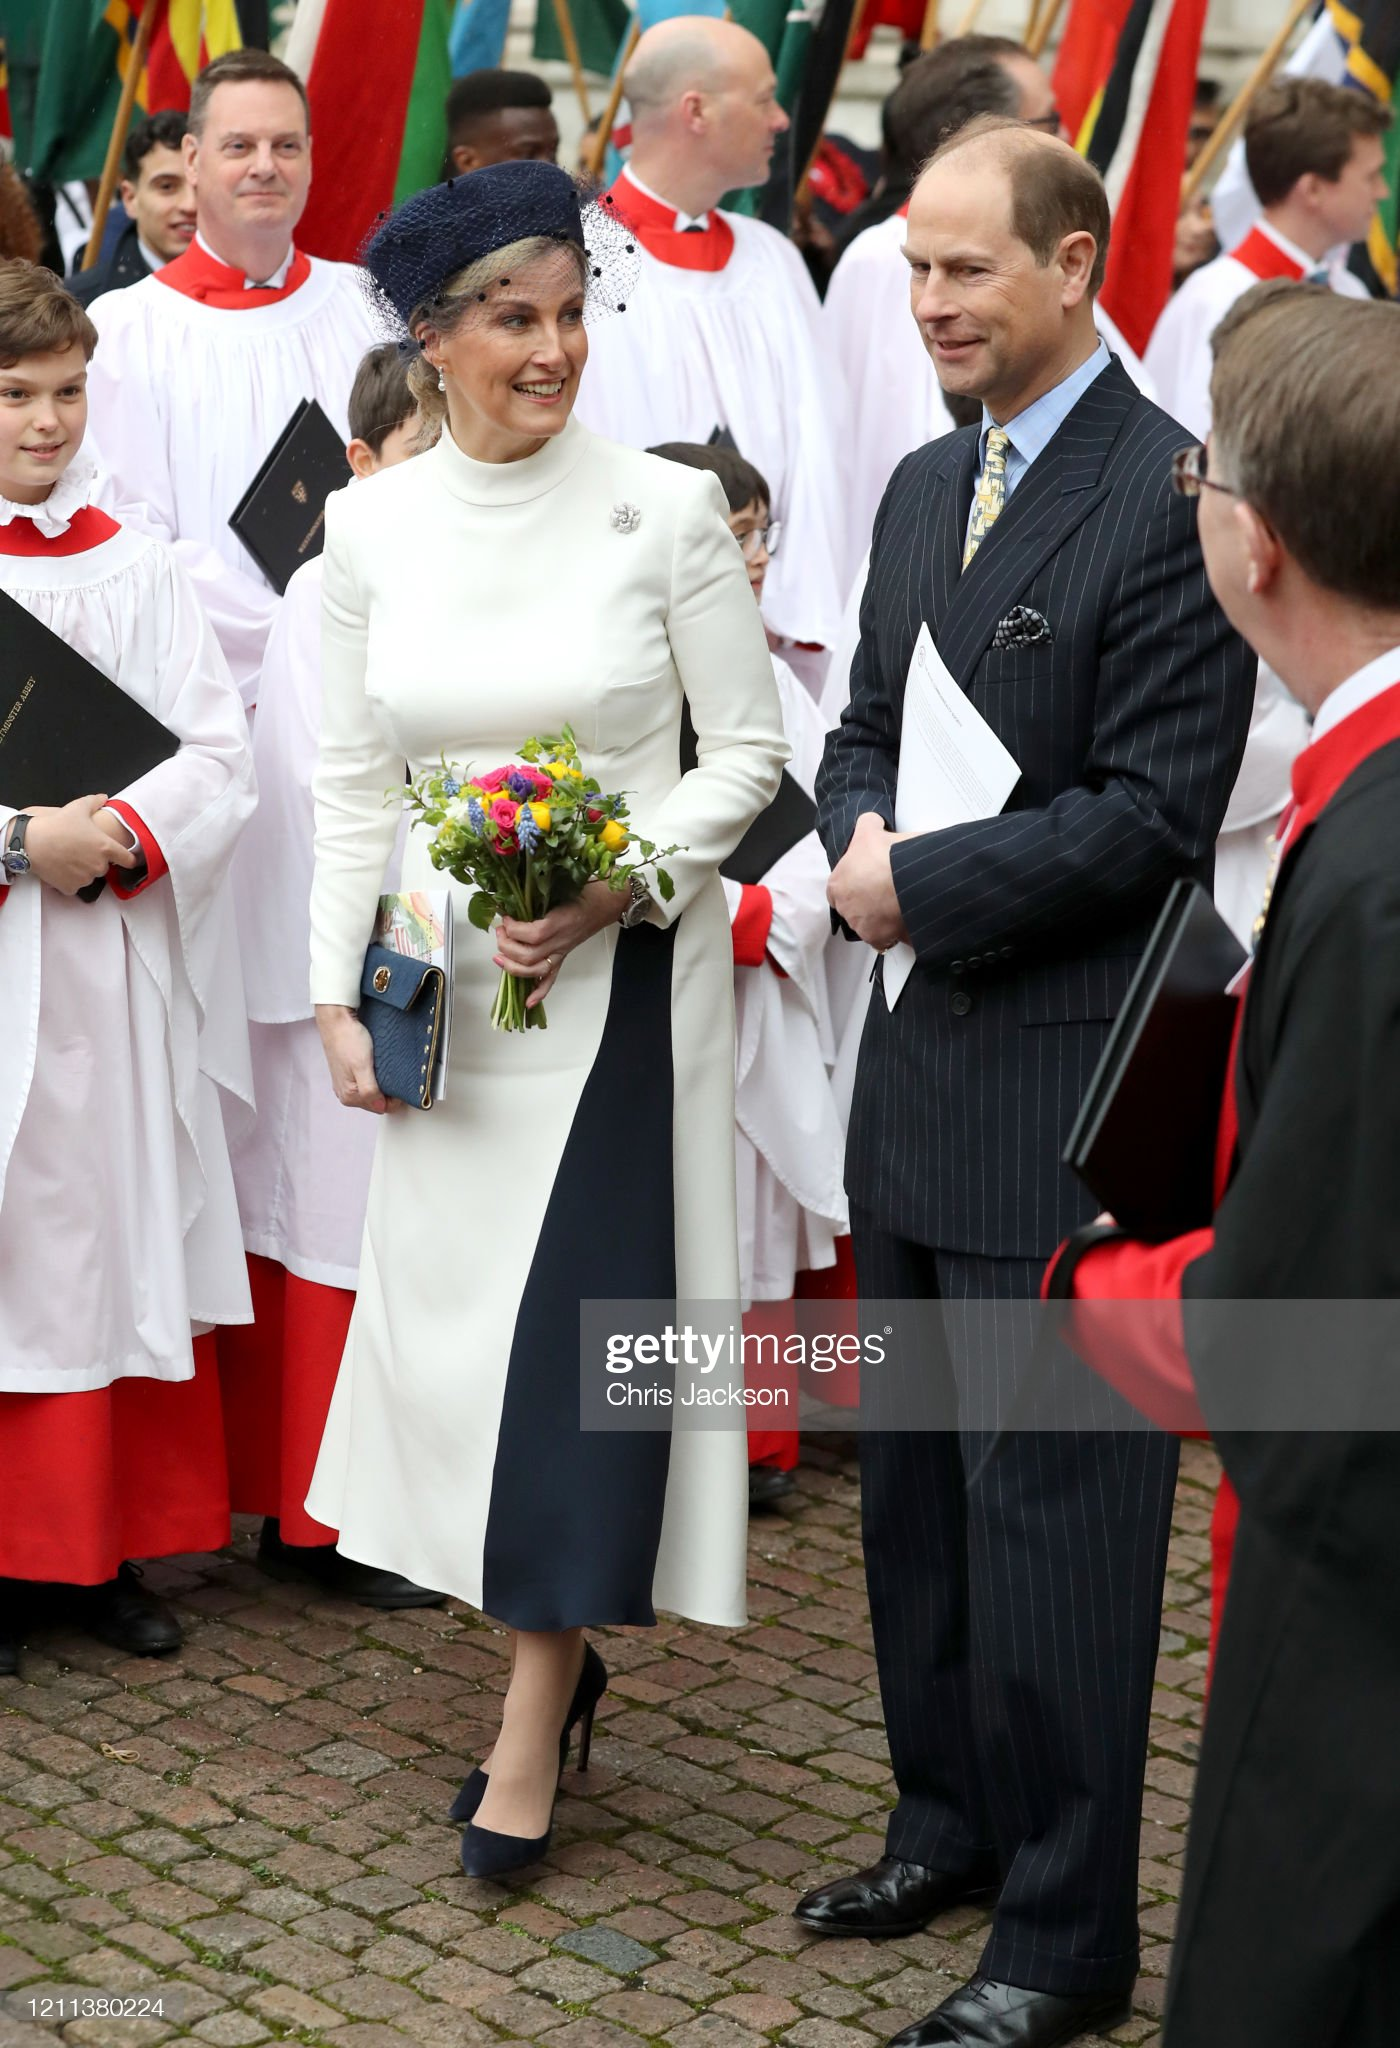 https://media.gettyimages.com/photos/sophie-countess-of-wessex-and-prince-edward-earl-of-wessex-depart-the-picture-id1211380224?s=2048x2048